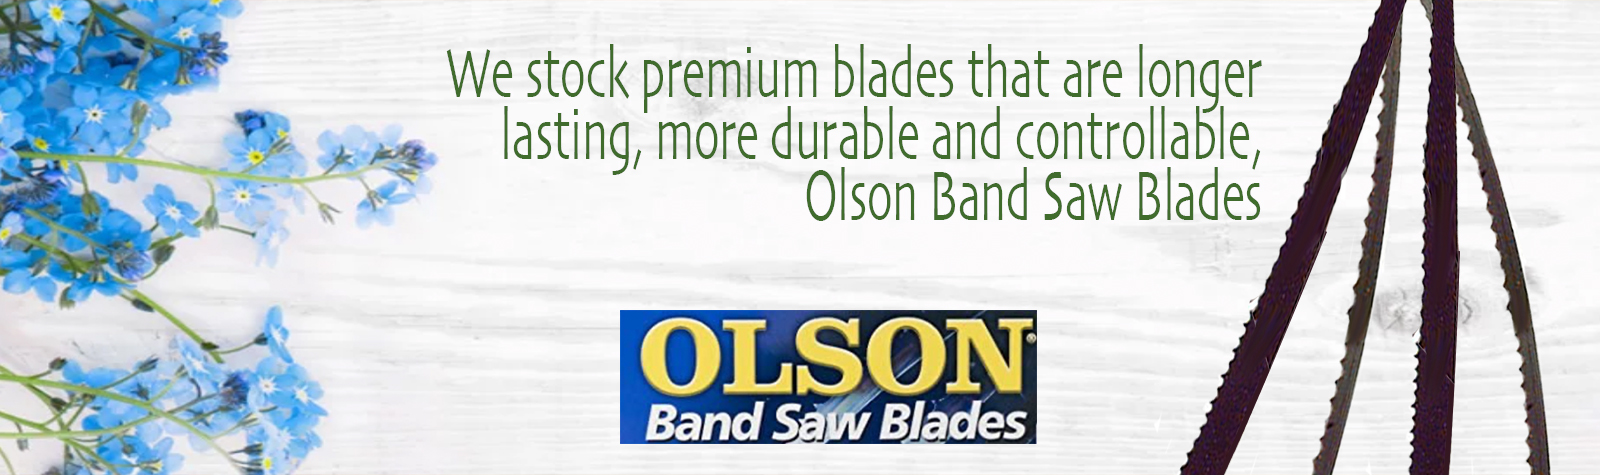 We stock premium blades that are longer lasting, more durable and controllable, Oslon Saw Blades.